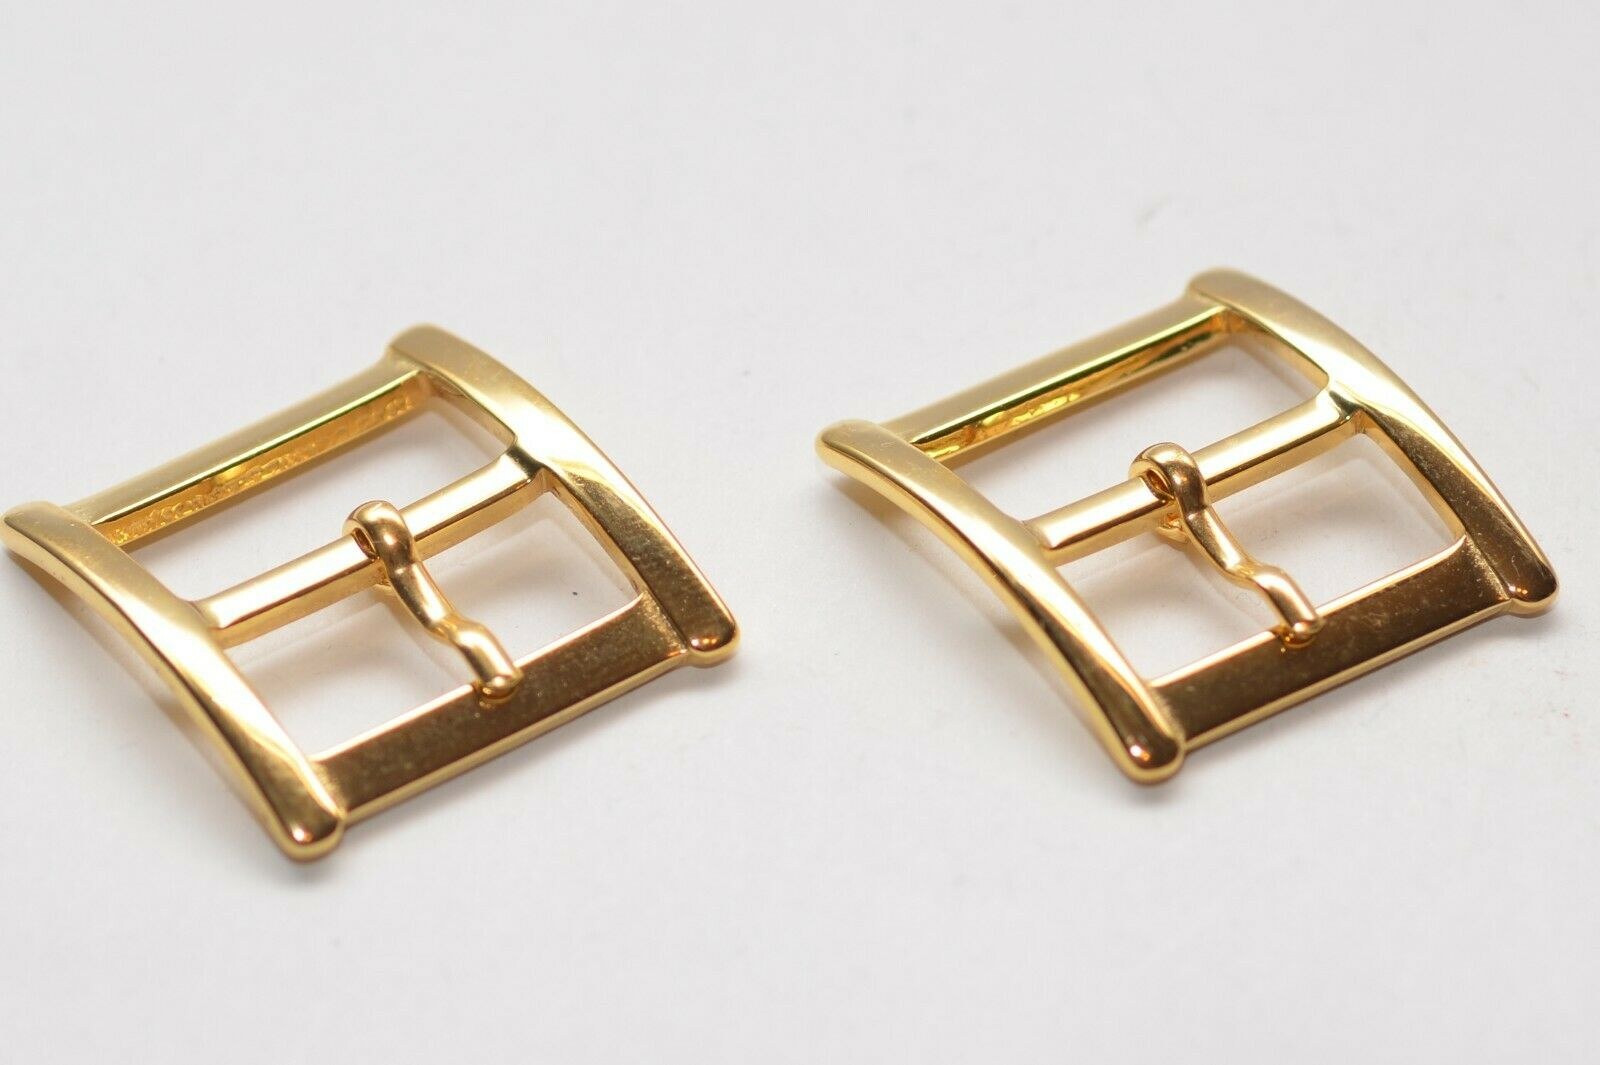 2x Solid Belt Buckle, Approx. 25 MM Width, Gold, 80er Years, NOS